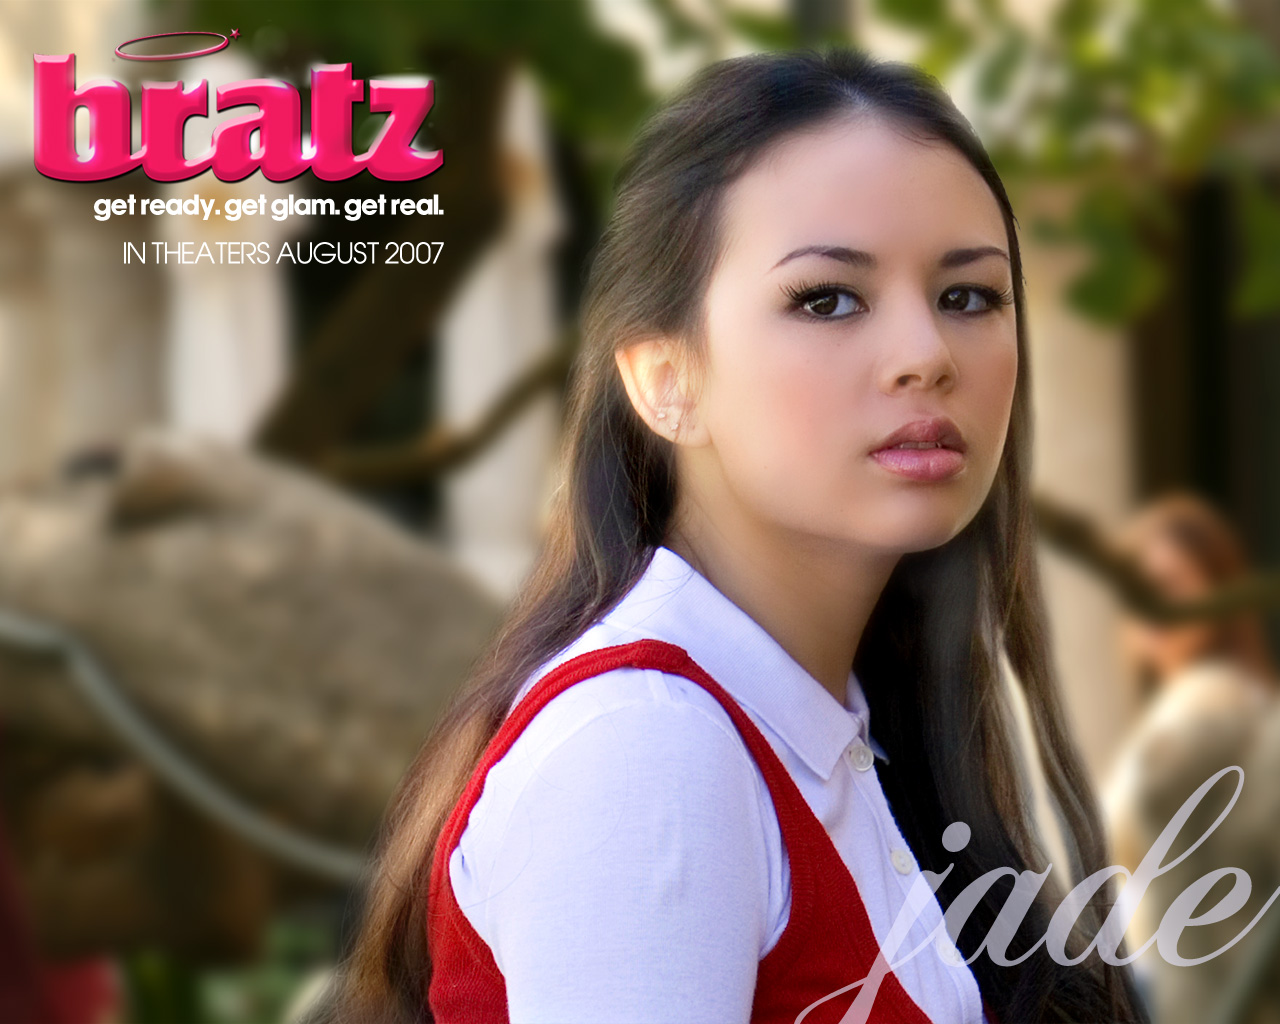 http://2.bp.blogspot.com/-ZvKYcpQyNbQ/TdT1DeqPvRI/AAAAAAAAAbk/5c68yUAwZaY/s1600/janel-parrish-in-bratz--the-movie-wallpaper-1-1280-bratz-14.jpg